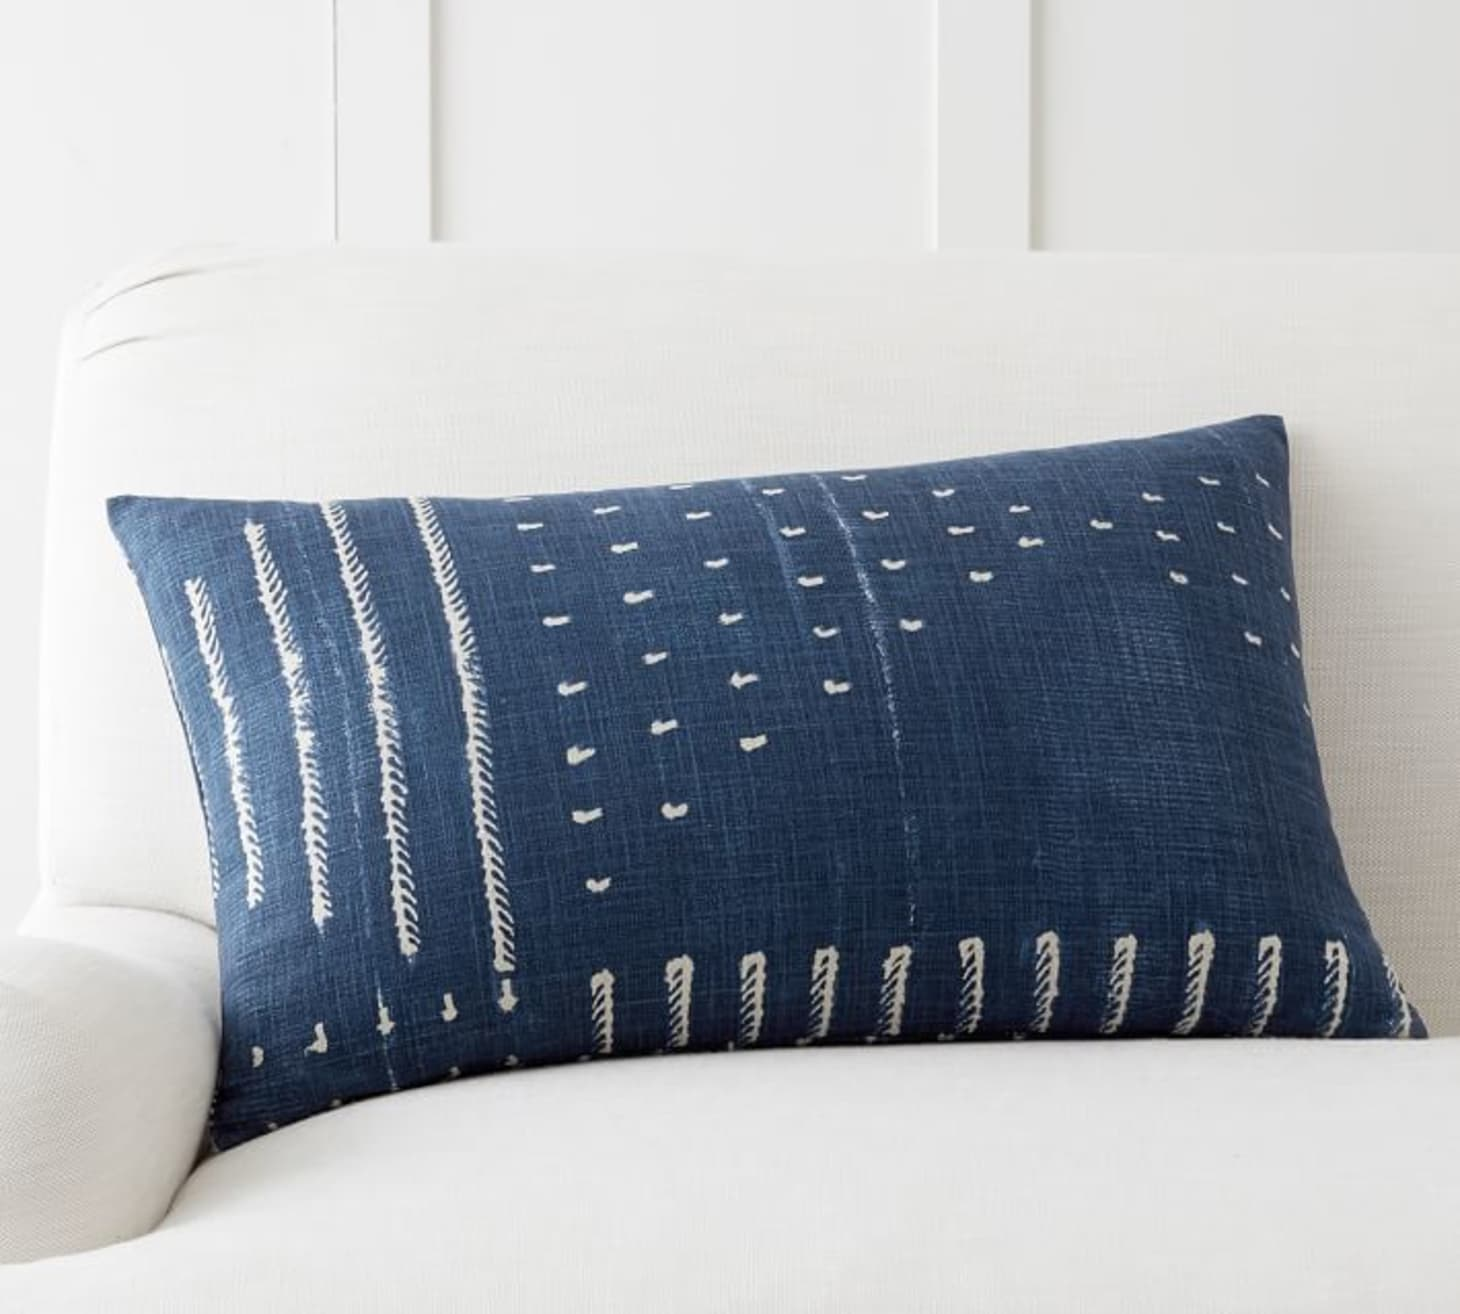 Tremendous The Best Mud Cloth And Indigo Pillows Pillow Covers Dailytribune Chair Design For Home Dailytribuneorg